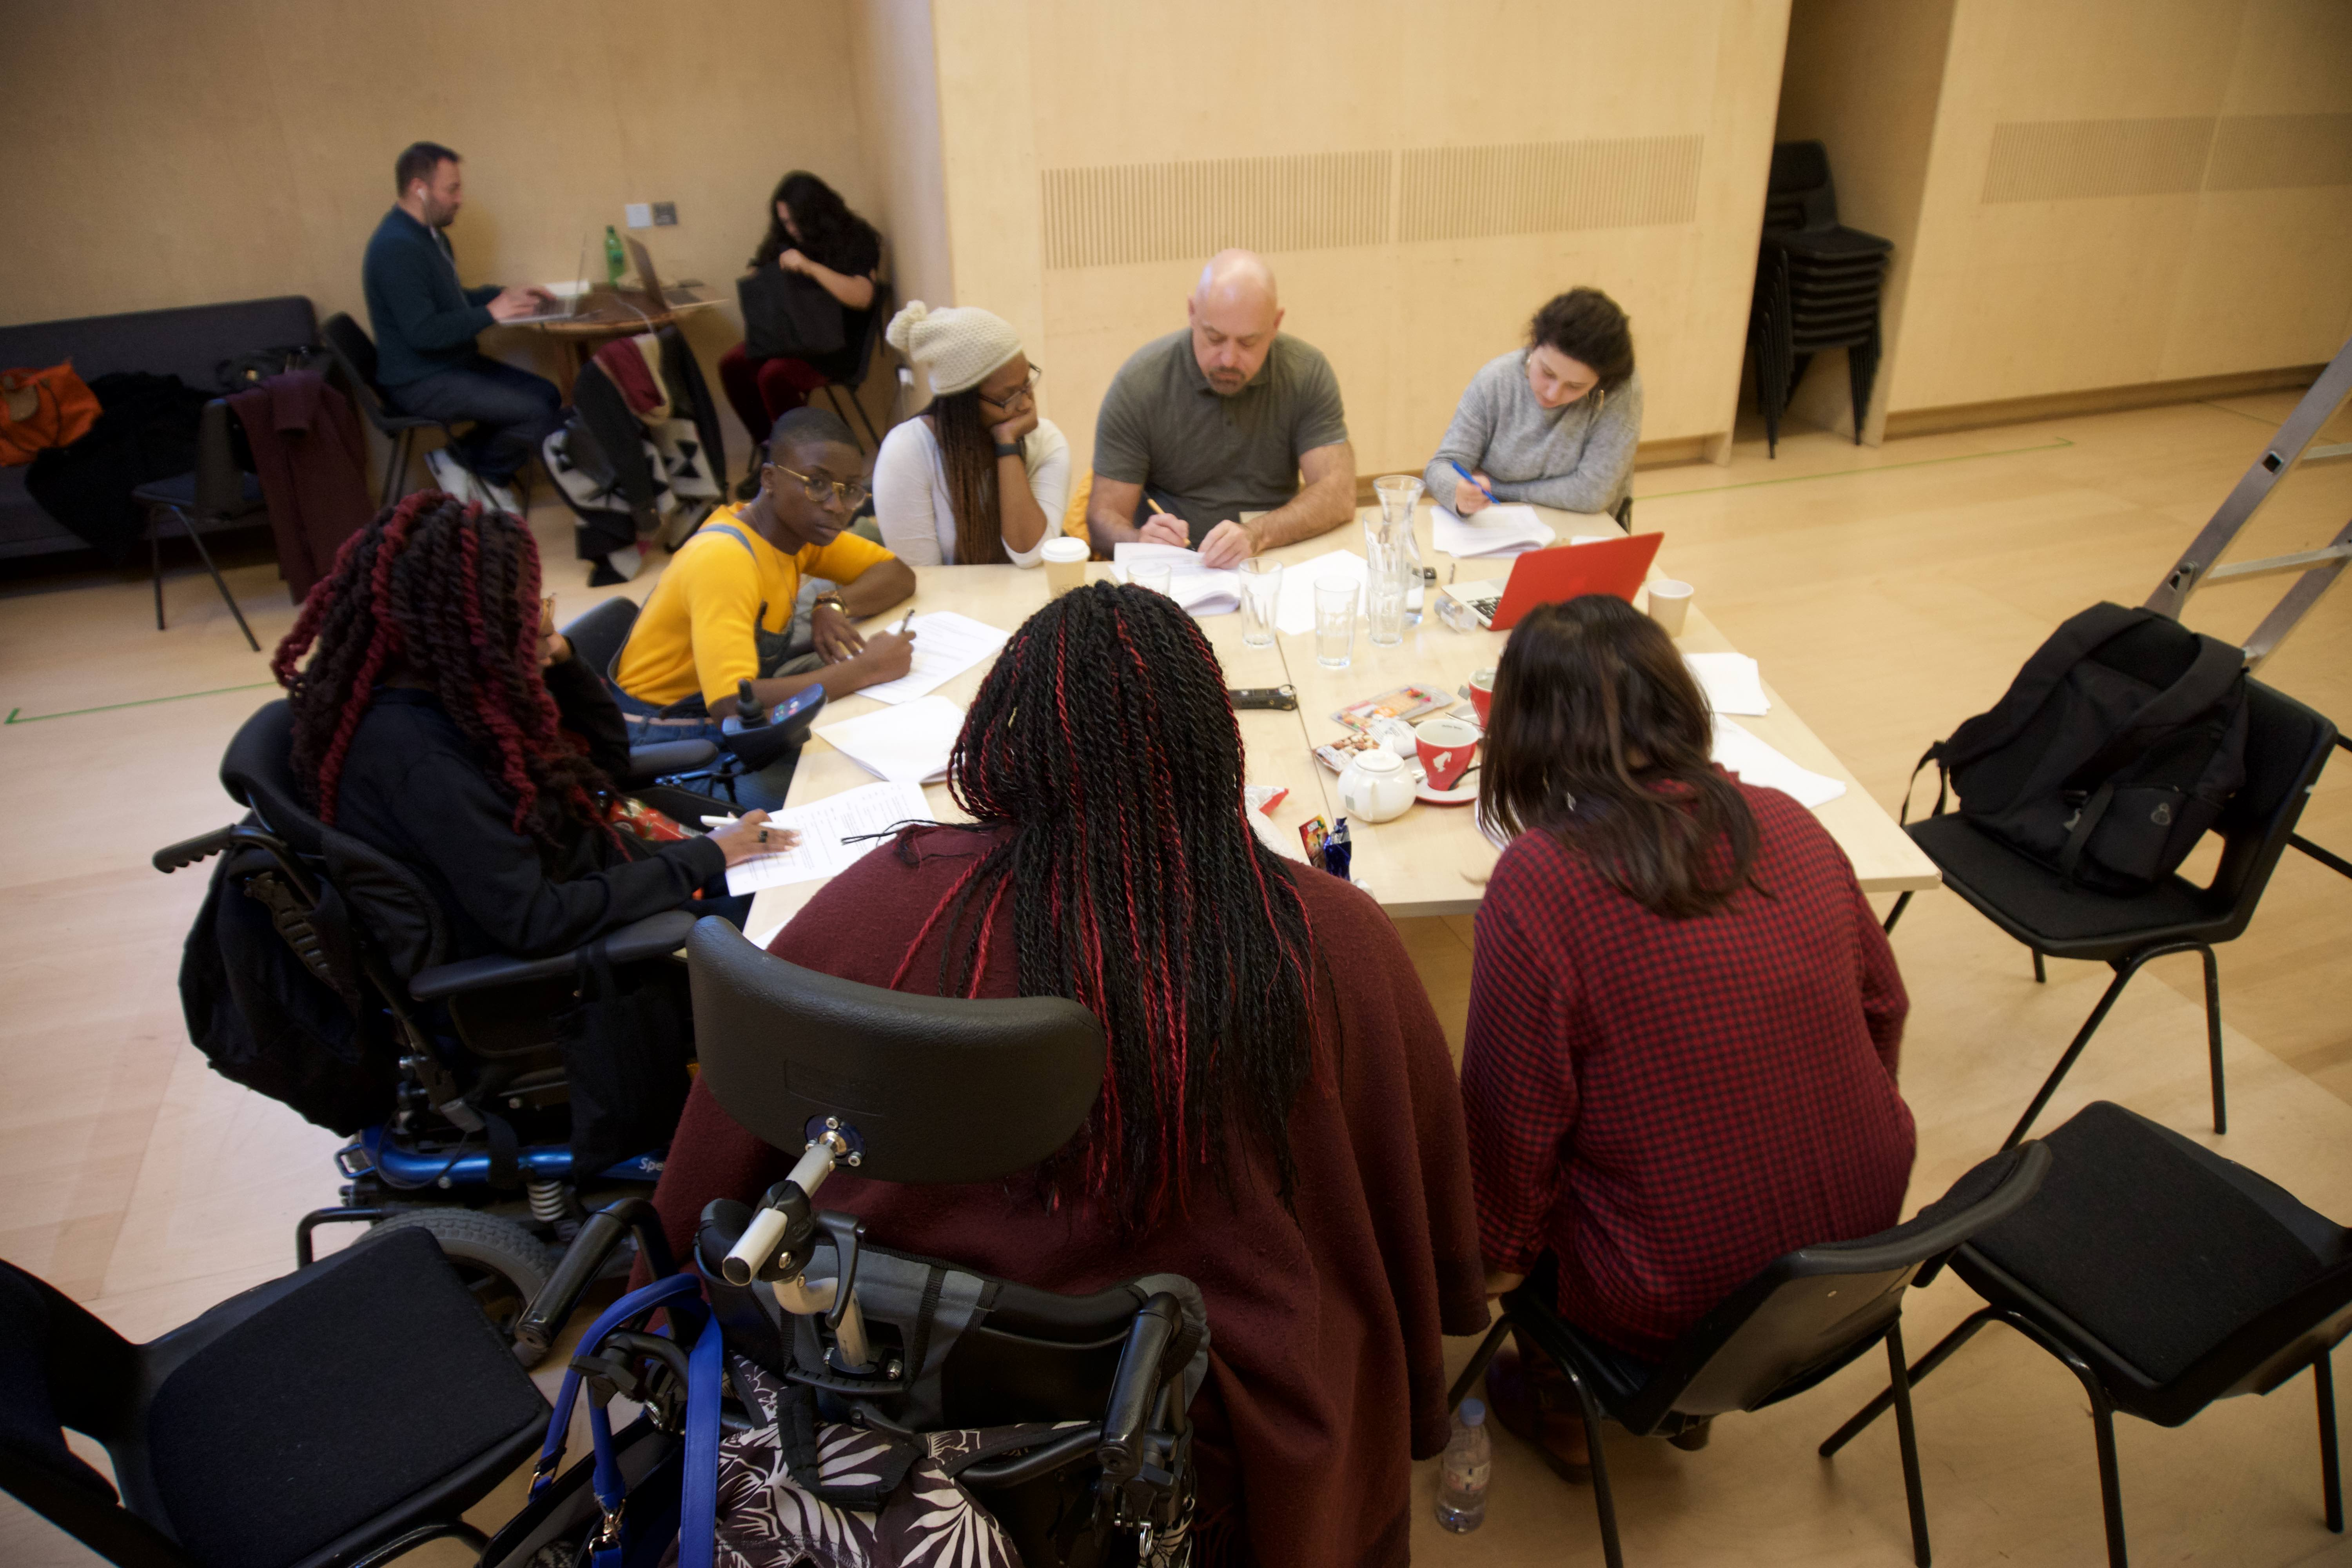 The photo is taken from above looking down on their heads. Seven people of varying ages and races sit around a table, with scripts in hand. They comprise of three actors, two BSL interpreters and the director and writer. The actor and writer are both sat in electric wheelchairs. Everyone's head is down as they work on the scripts in front of them. Two people are sat in a corner around a smaller table both have laptops in front of them.